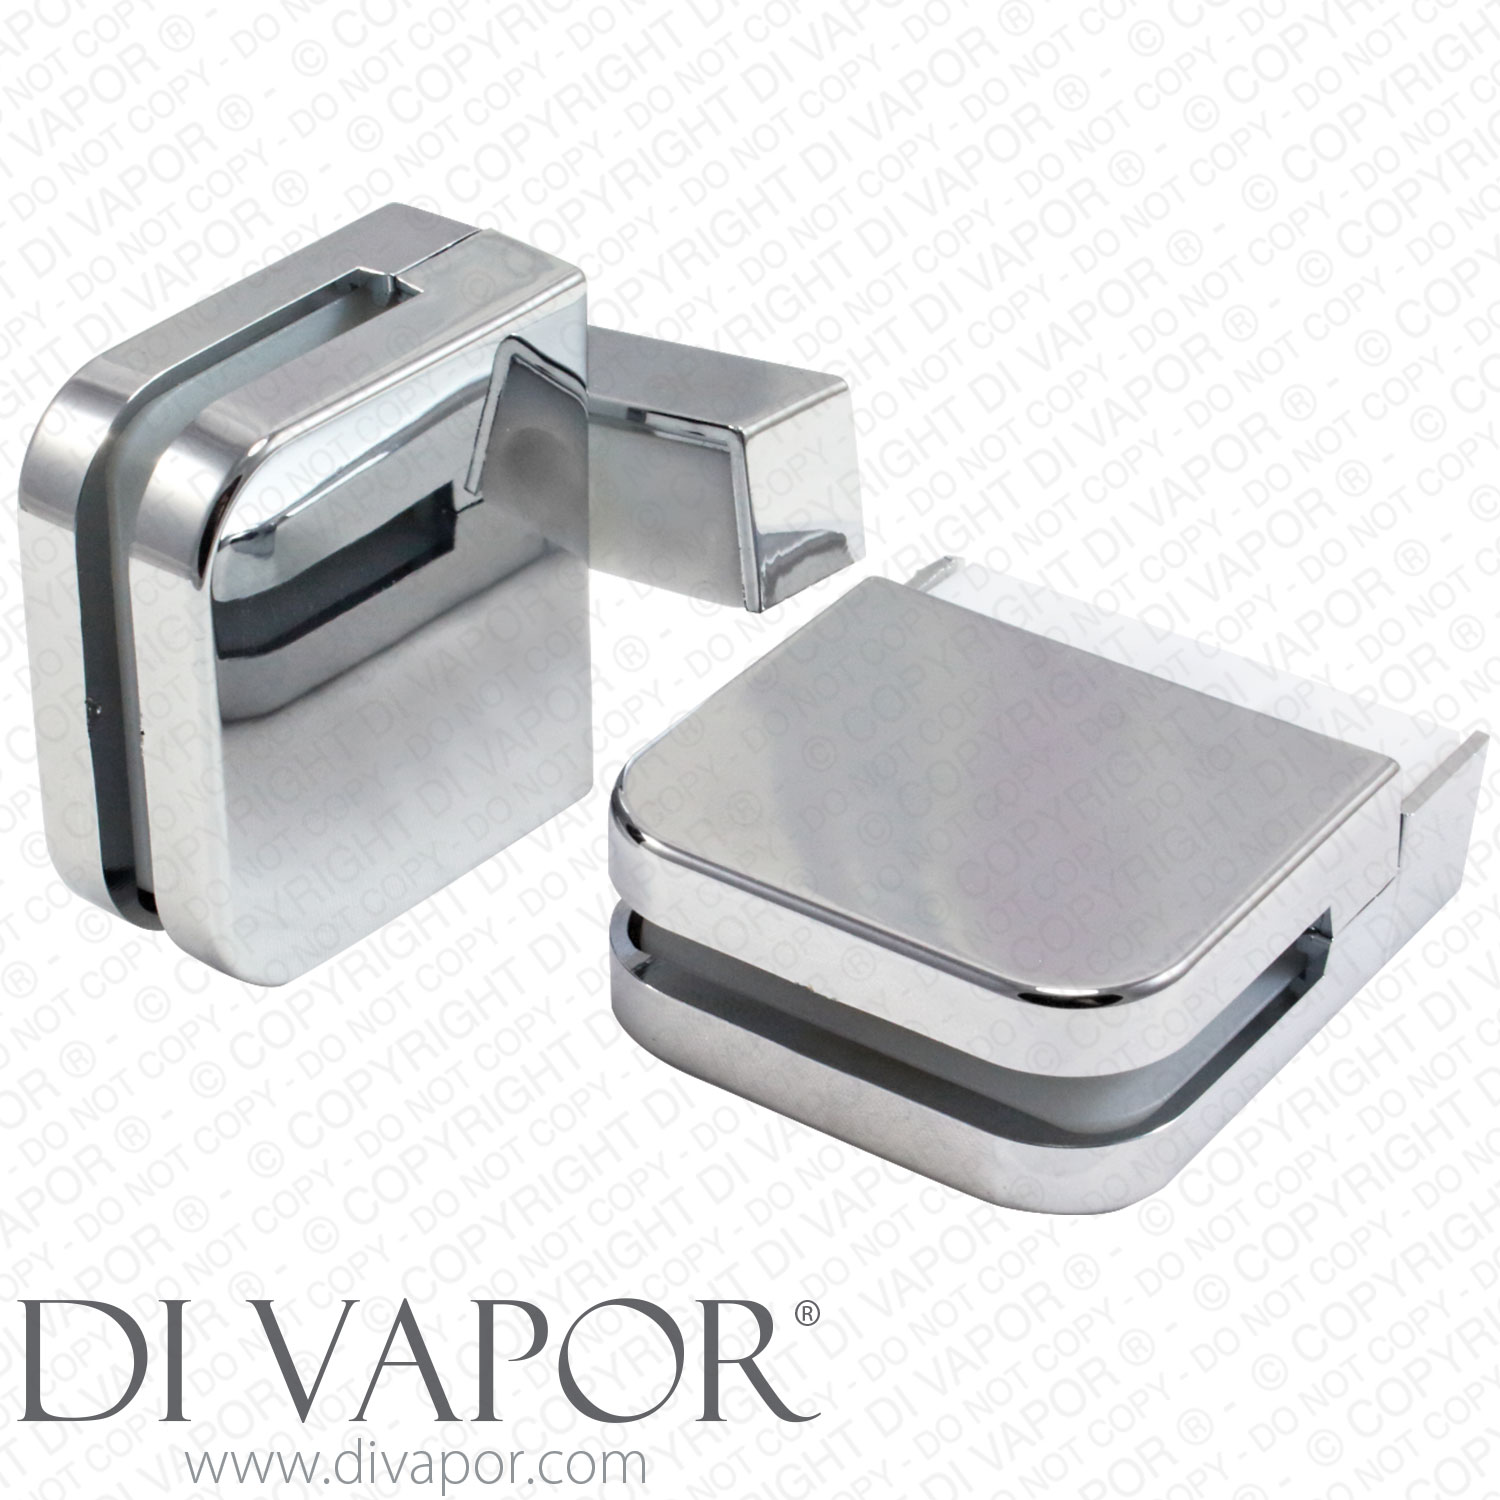 plastic glass shower door pivot hinge for 6mm glass clamp pack of 2